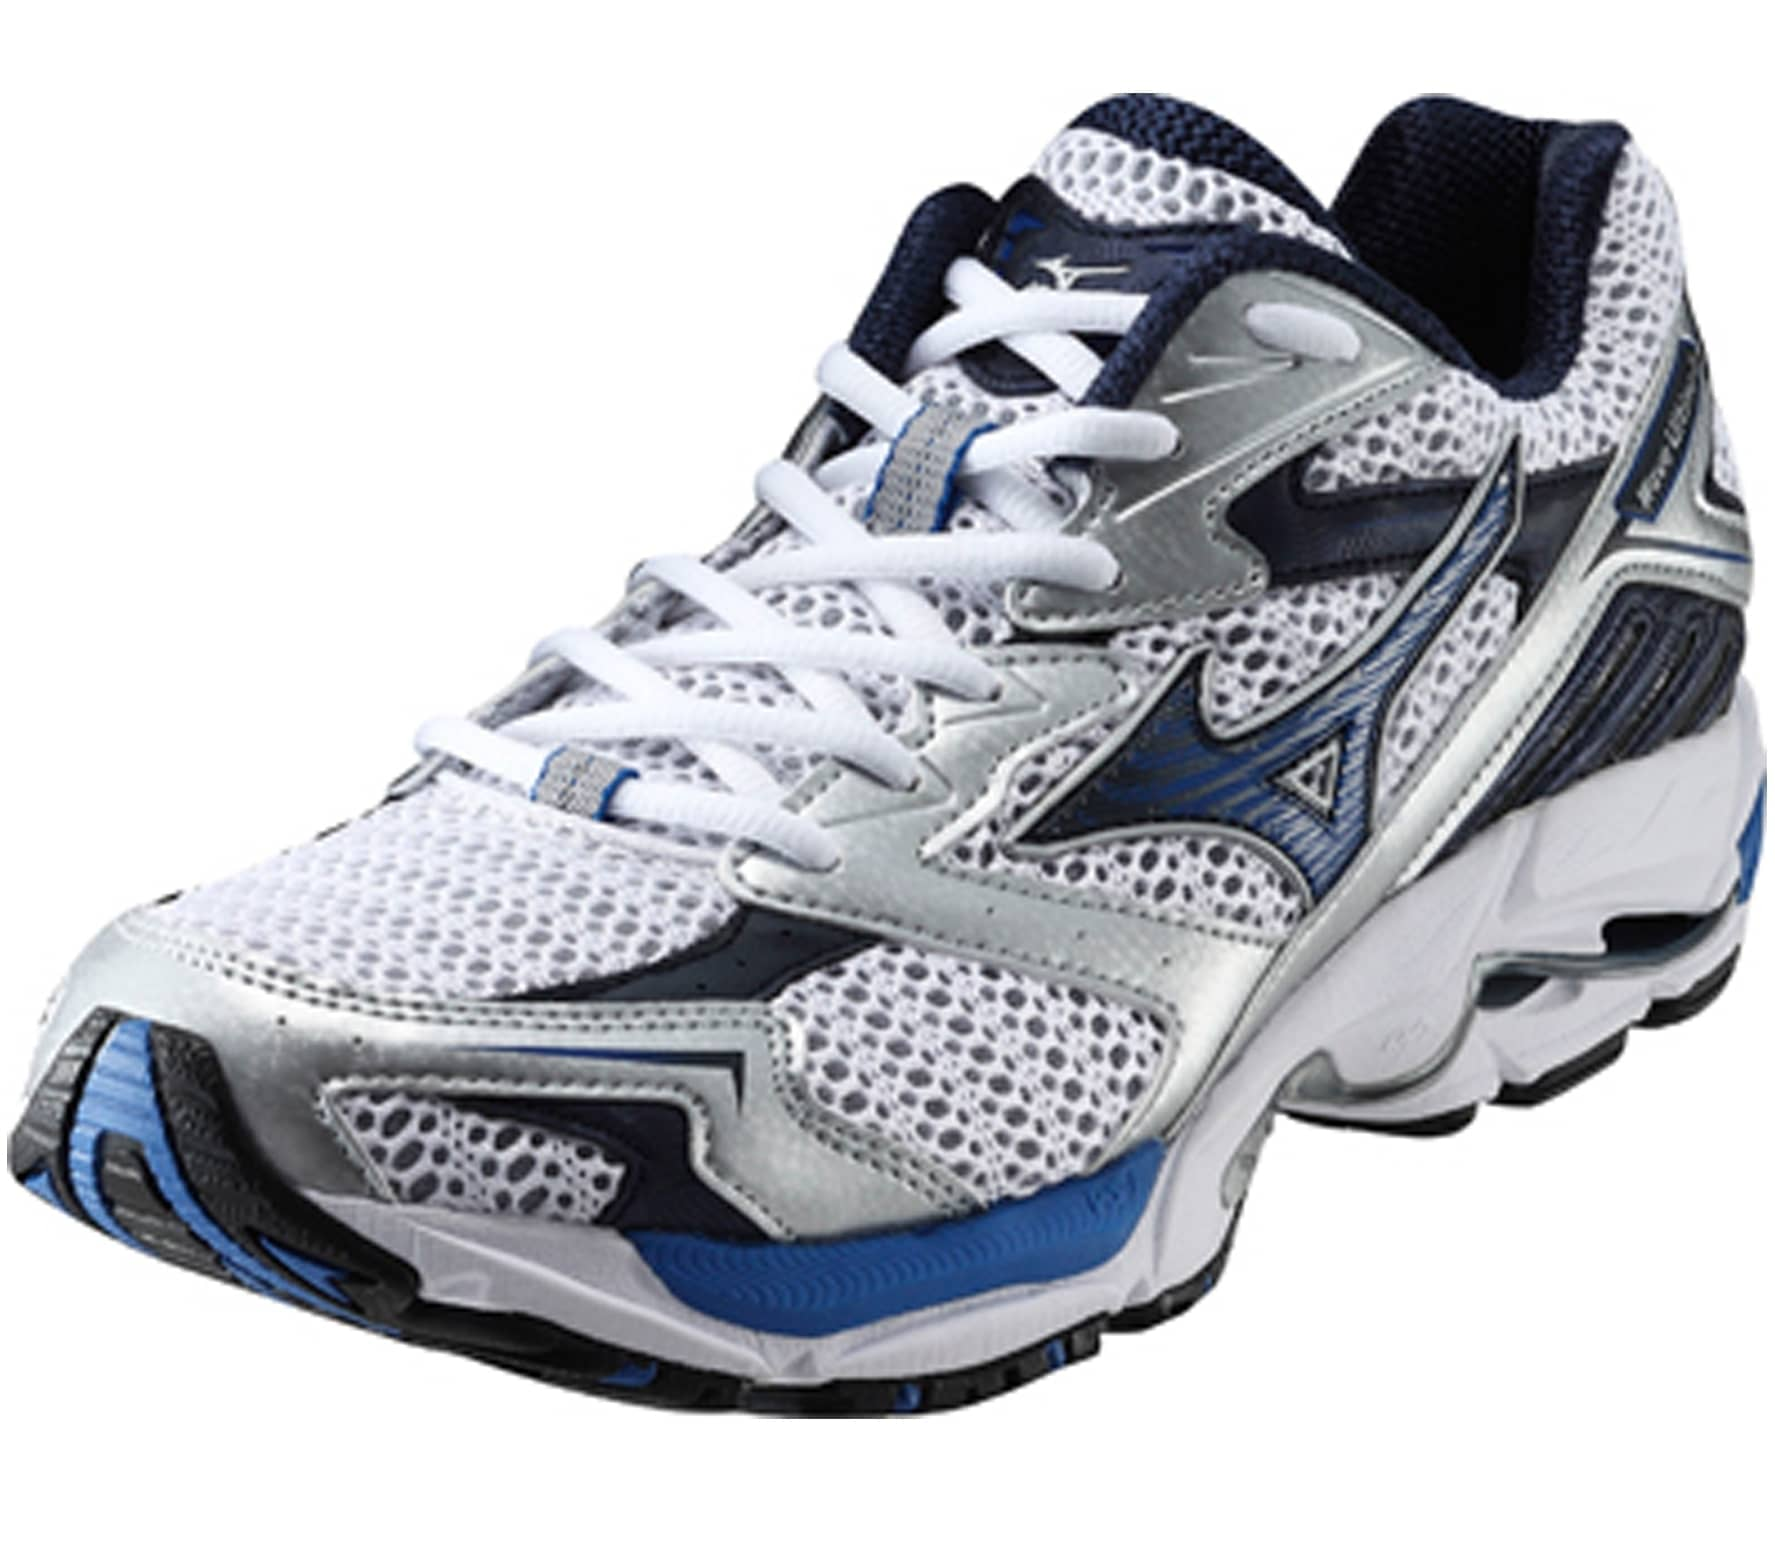 Why Buy Mizuno Stability Shoes